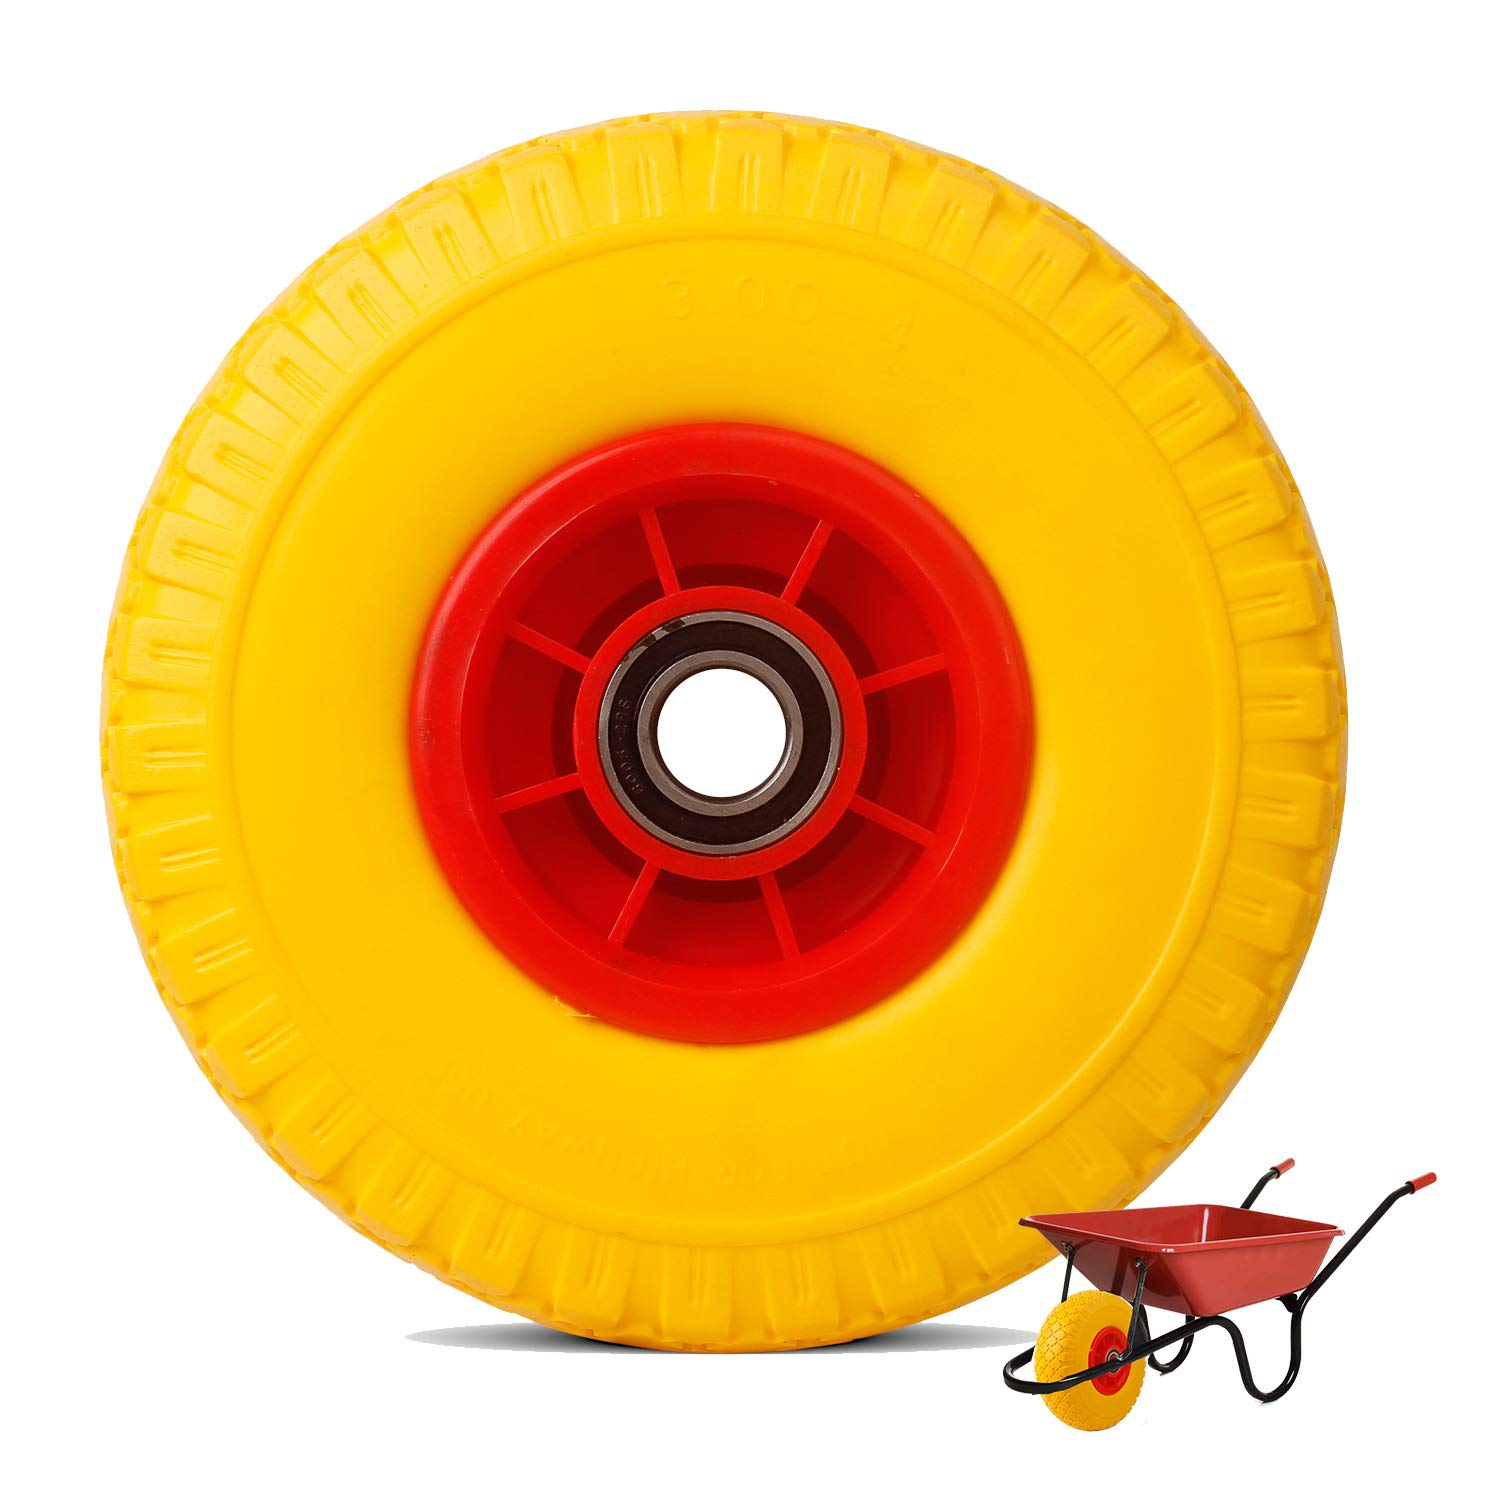 Everbest4u 260 mm Puncture Proof wheelbarrow wheels, yellow, Tire 3.00-4, Replacement Tyre for private use in home & garden